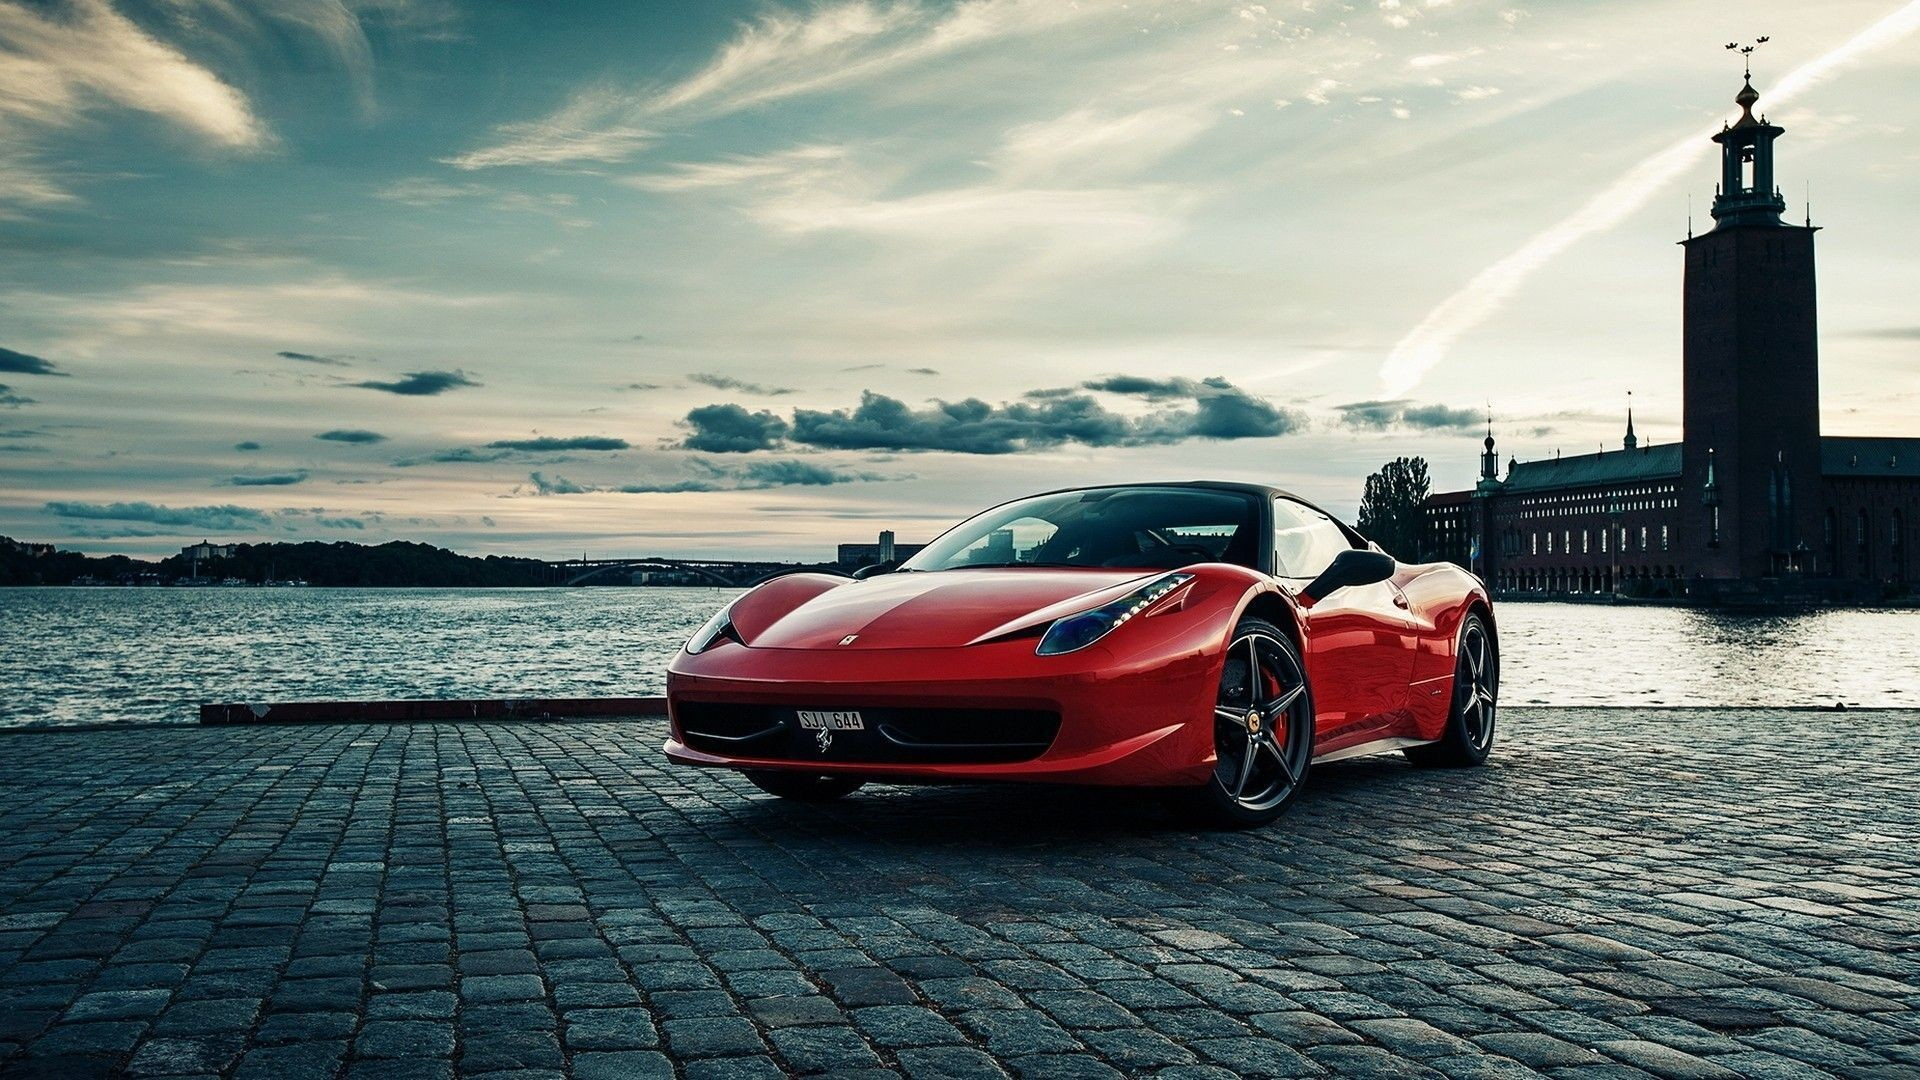 1920x1080 Ferrari 458 Italia Wallpapers HD